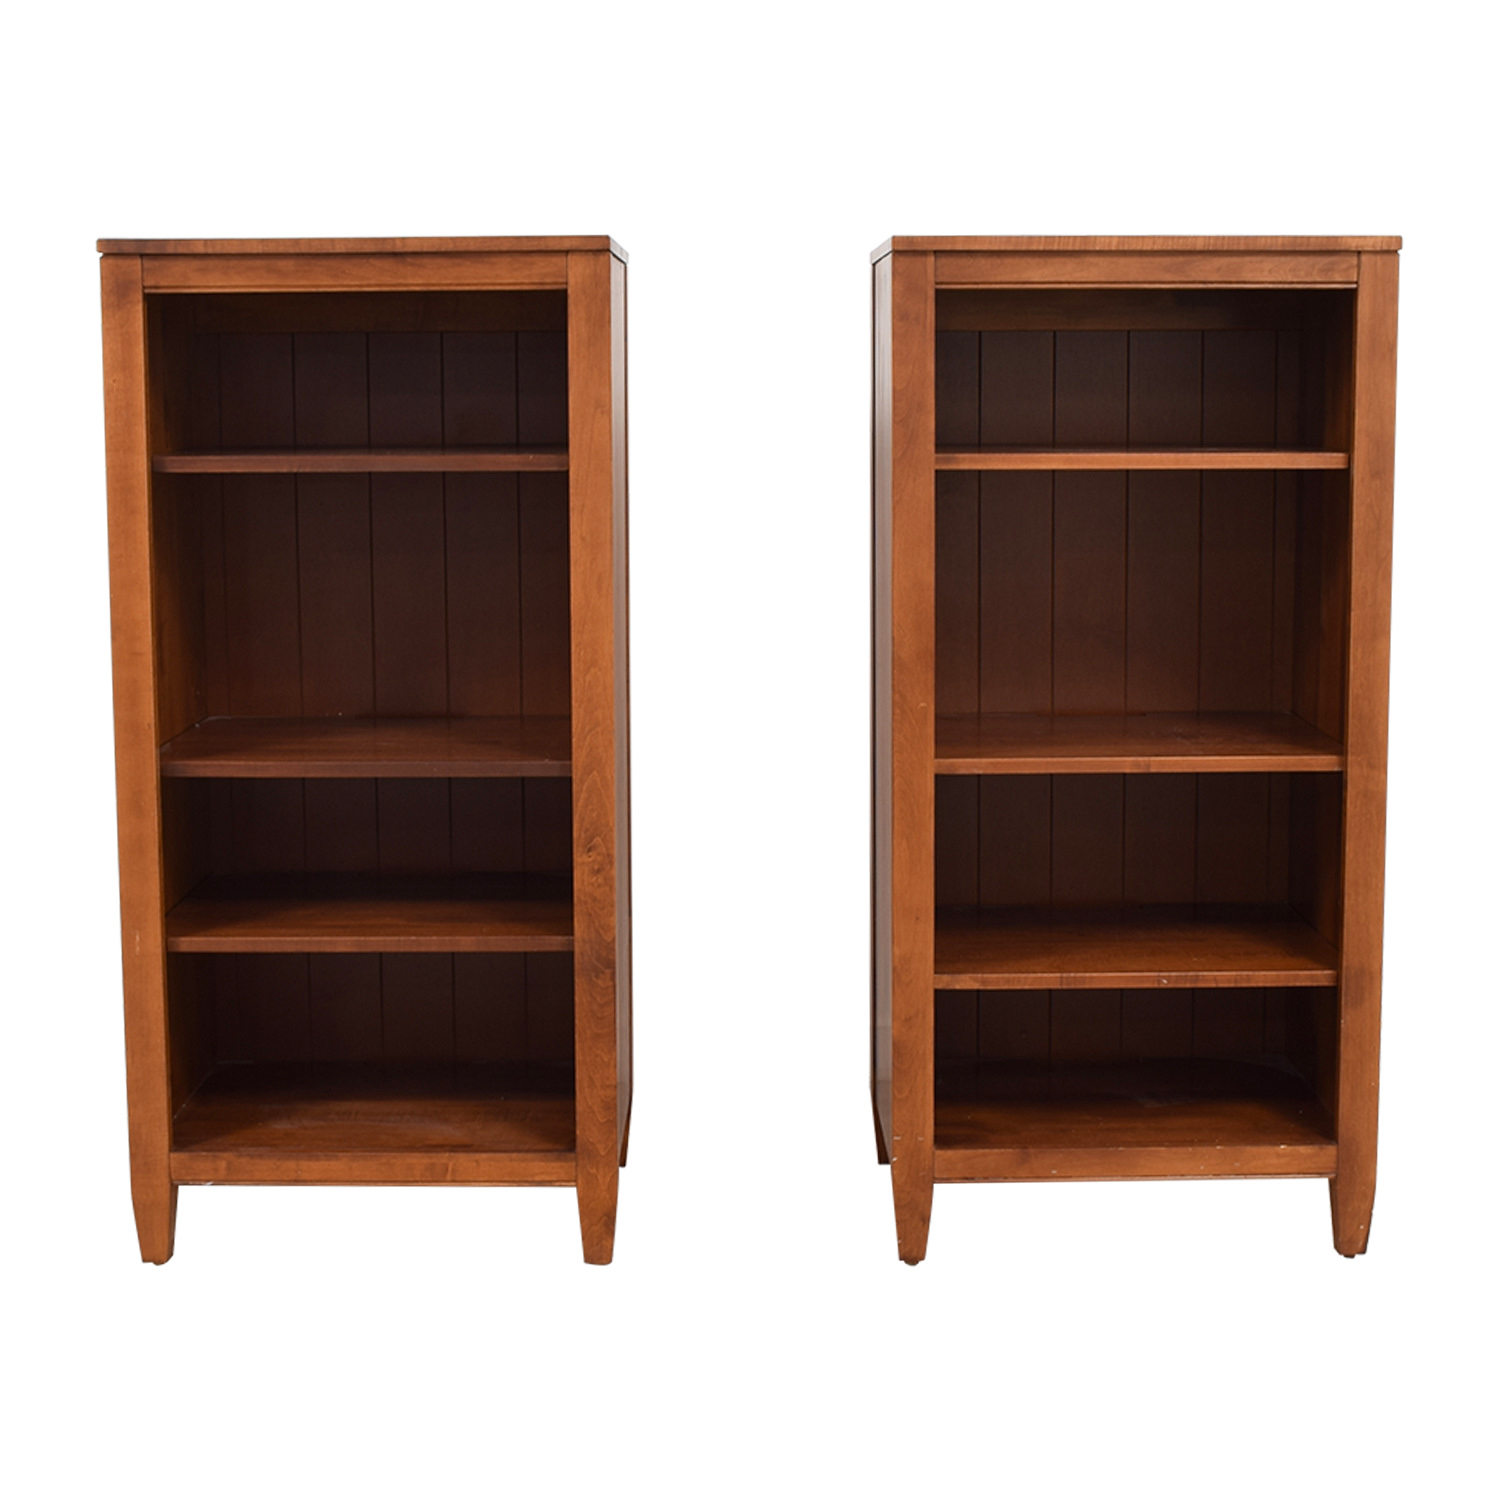 Ethan Allen Country Colors Collection Wood Bookcases / Bookcases & Shelving